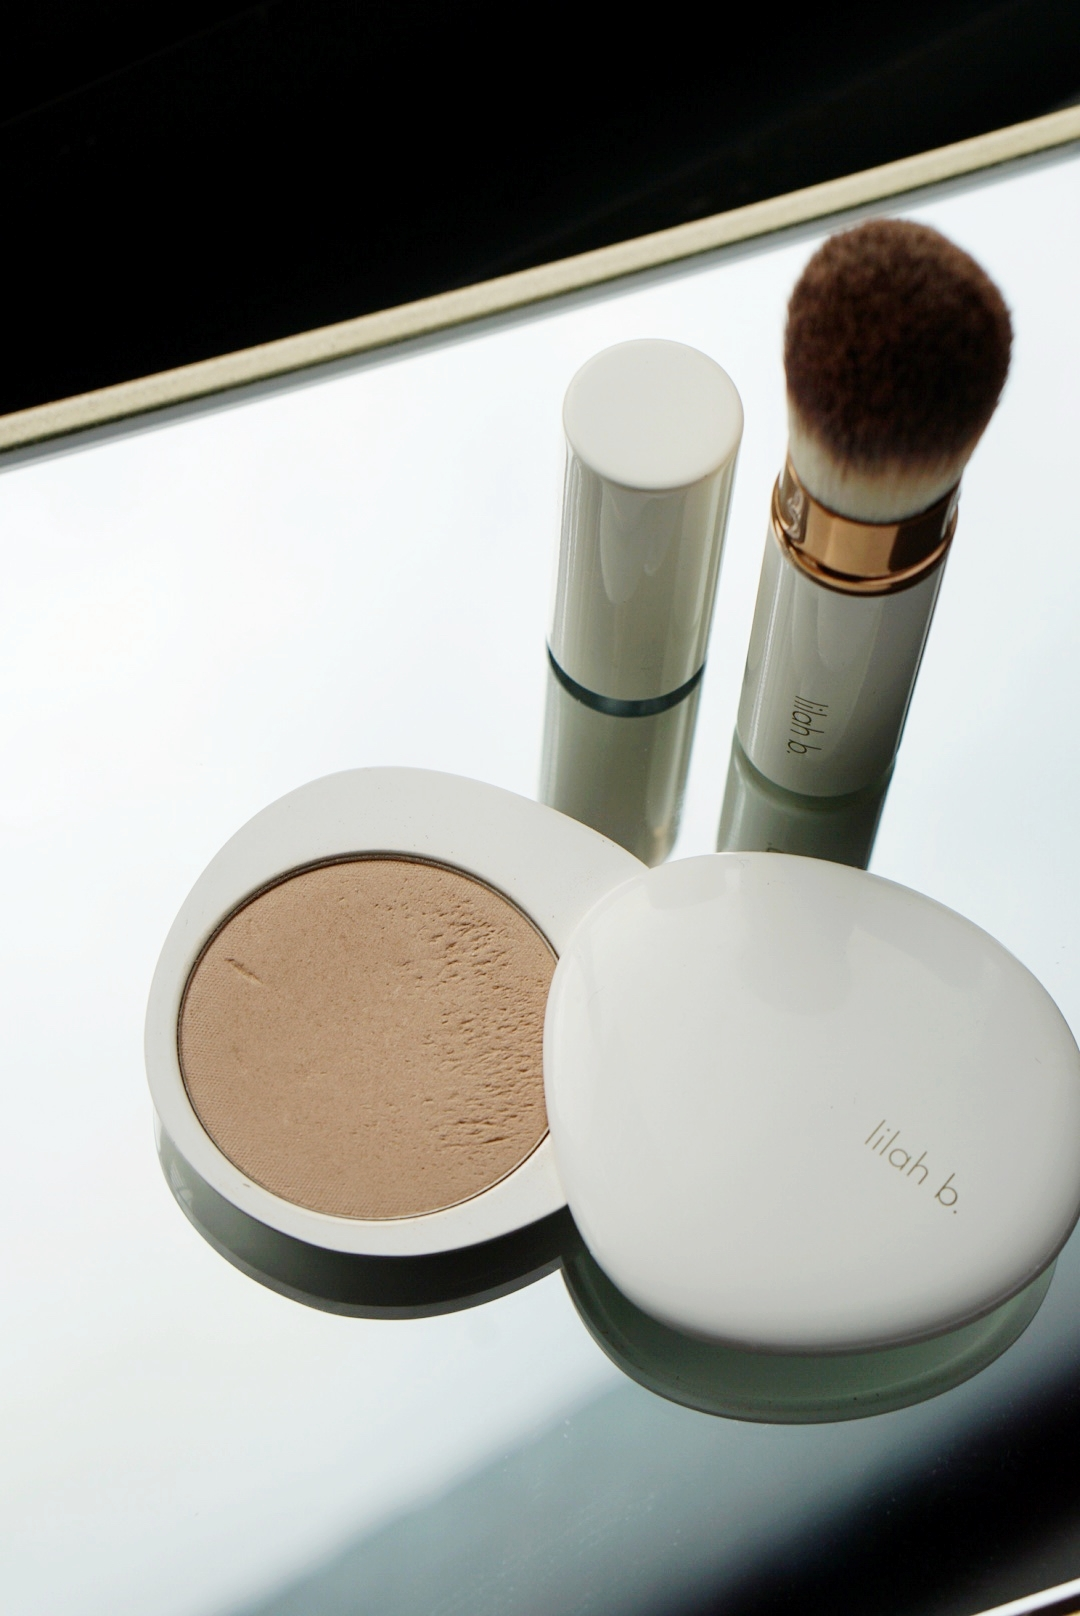 Flawless Finish Foundation by lilah b. - This foundation is in a powder formulation that offers light coverage. It is designed to work with any skin type and formulated with natural ingredients such as aloe and agar for hydrating benefits. It also has coconut oil! The shade I have is called b. natural.What I love: The powder has a build-able formula and instead of caking your skin, it makes you feel like you're not wearing makeup at all. I find this product perfect for controlling the shine on my oily t-zone. I also love the packaging!What I'd like to change: The brush feels a little harsh against my skin sometimes, so I actually swapped it out for a brush that feels softer after a few use.